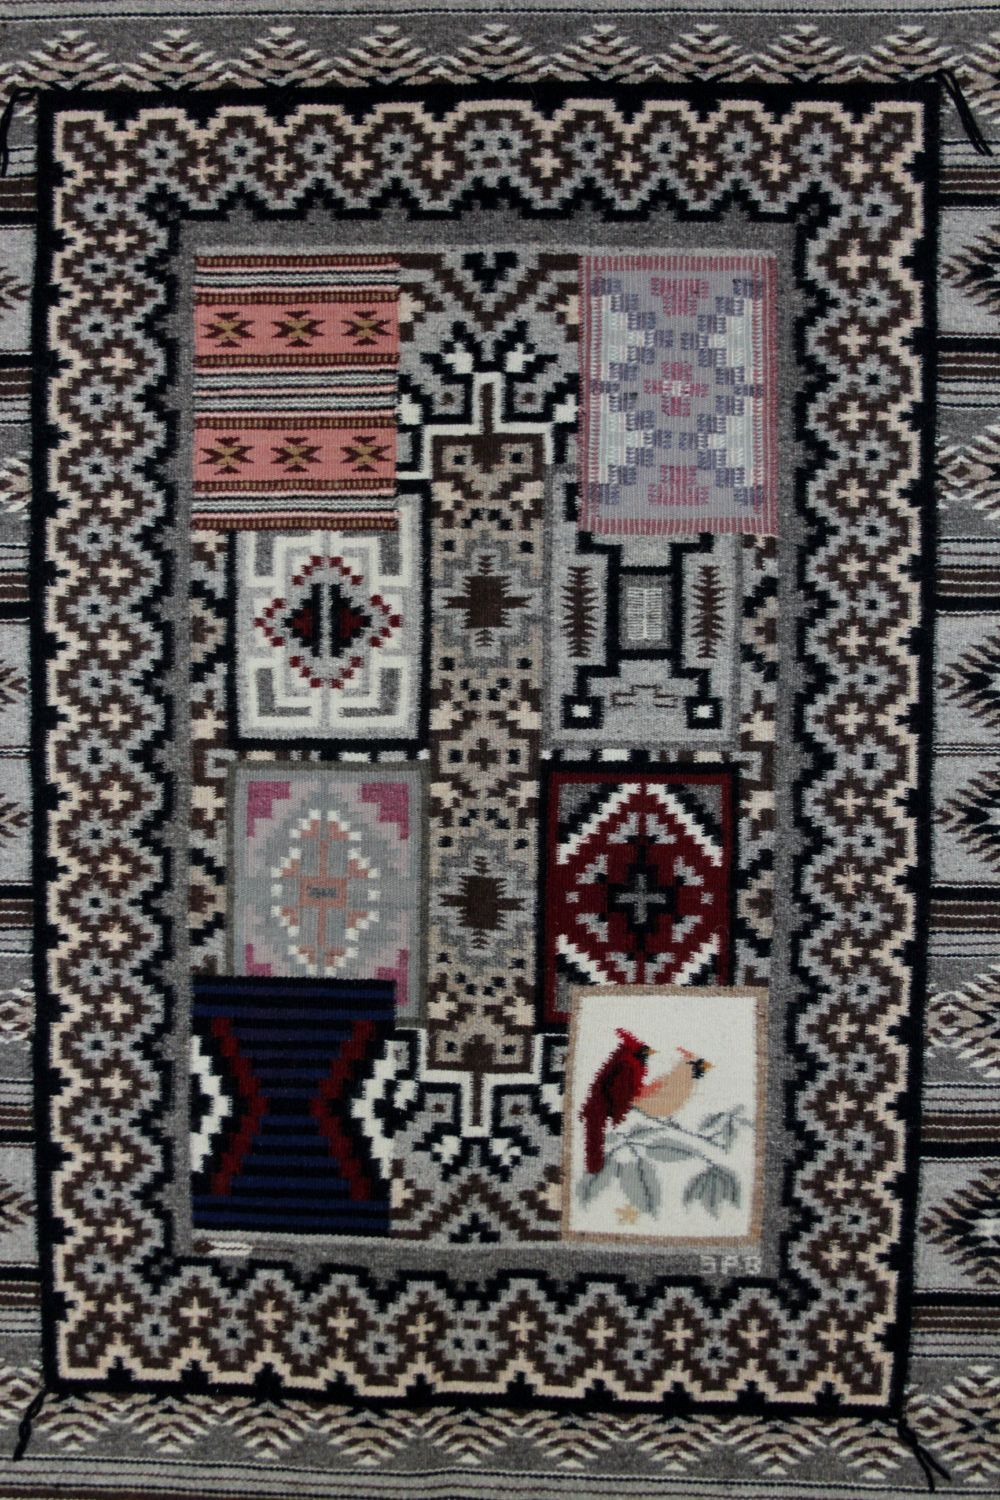 Navajo Pictorial Rug Native American Wool Rugs Weaving Southwestern